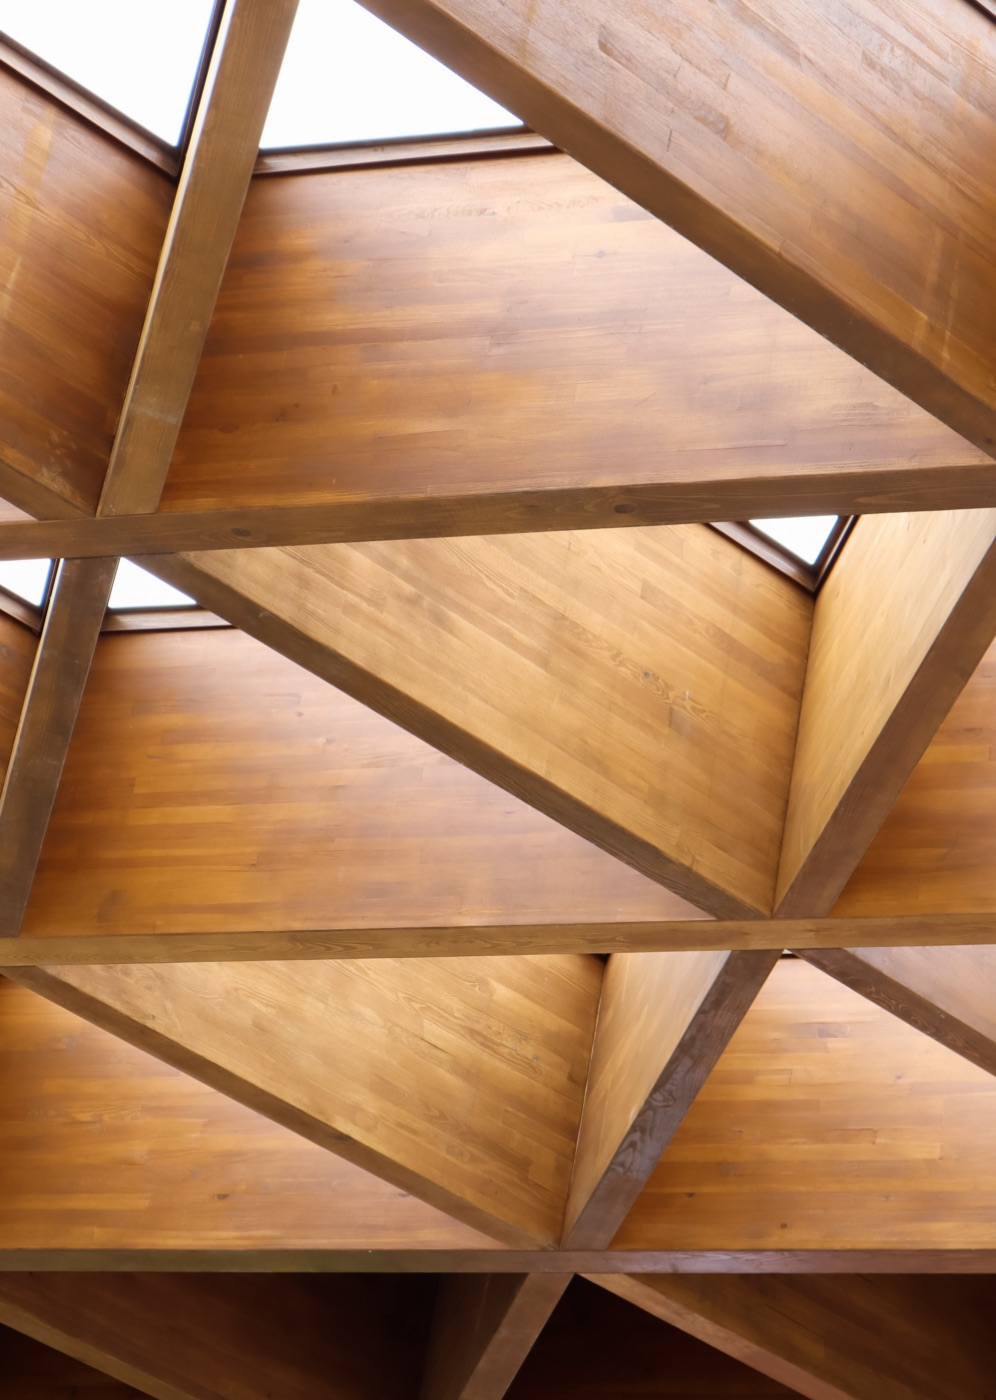 Modern wooden architecture structure with light coming through